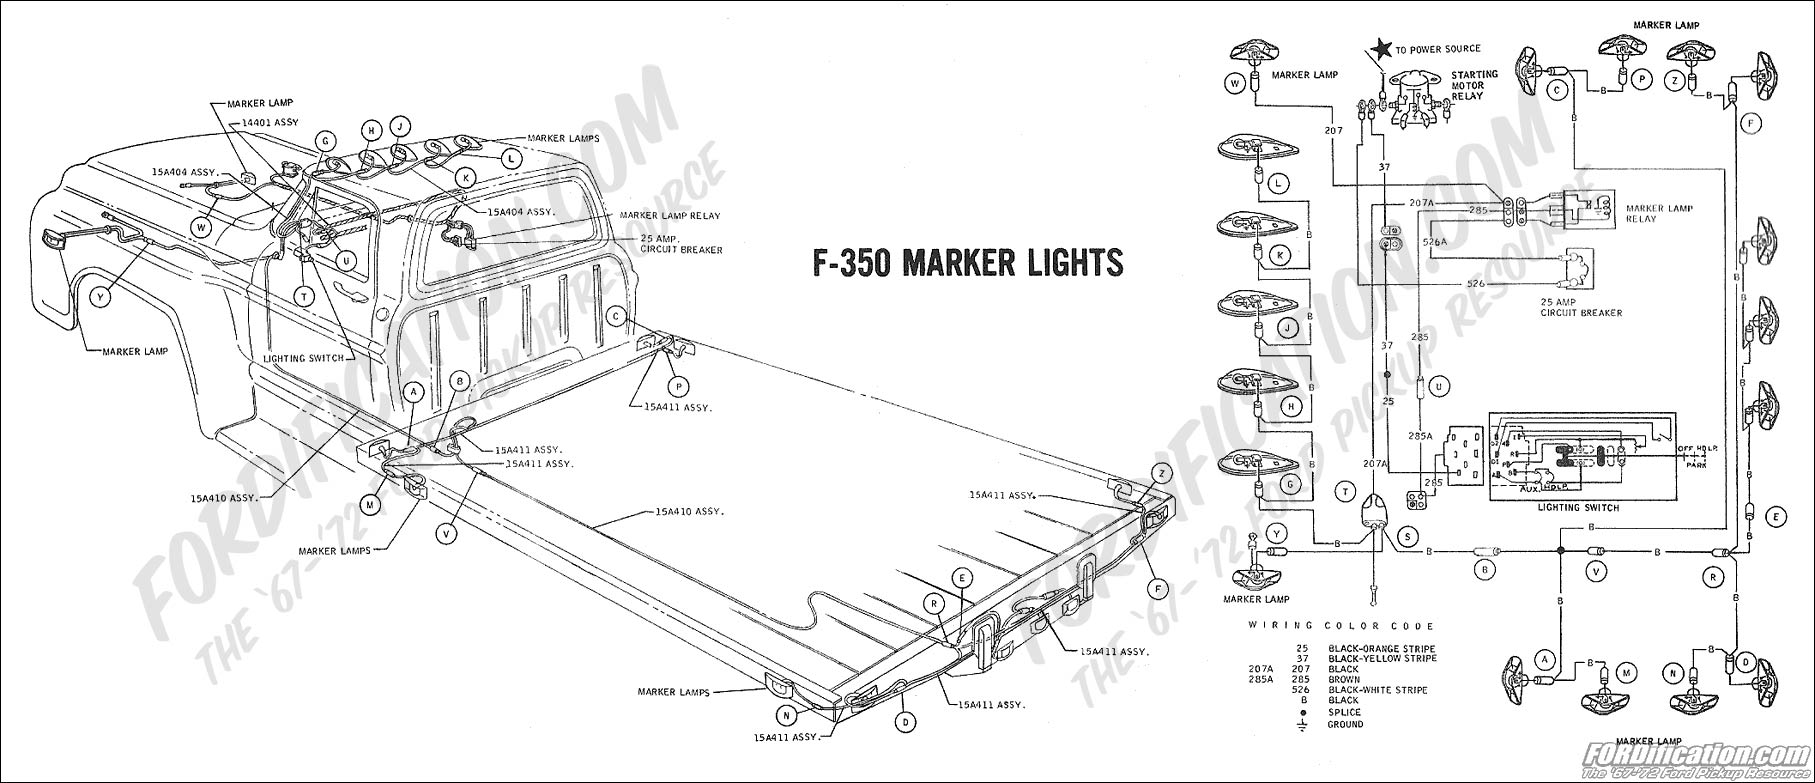 Alfa Romeo Lights Wiring Diagram on alfa romeo transaxle, alfa romeo seats, alfa romeo radio wiring, alfa romeo spider, alfa romeo steering, alfa romeo blueprints, alfa romeo drawings, alfa romeo transmission, alfa romeo rear axle, alfa romeo chassis, alfa romeo paint codes, alfa romeo accessories, alfa romeo body, alfa romeo all models, alfa romeo repair manuals, 1995 ford f-250 transmission diagrams, alfa romeo engine, alfa romeo cylinder head,